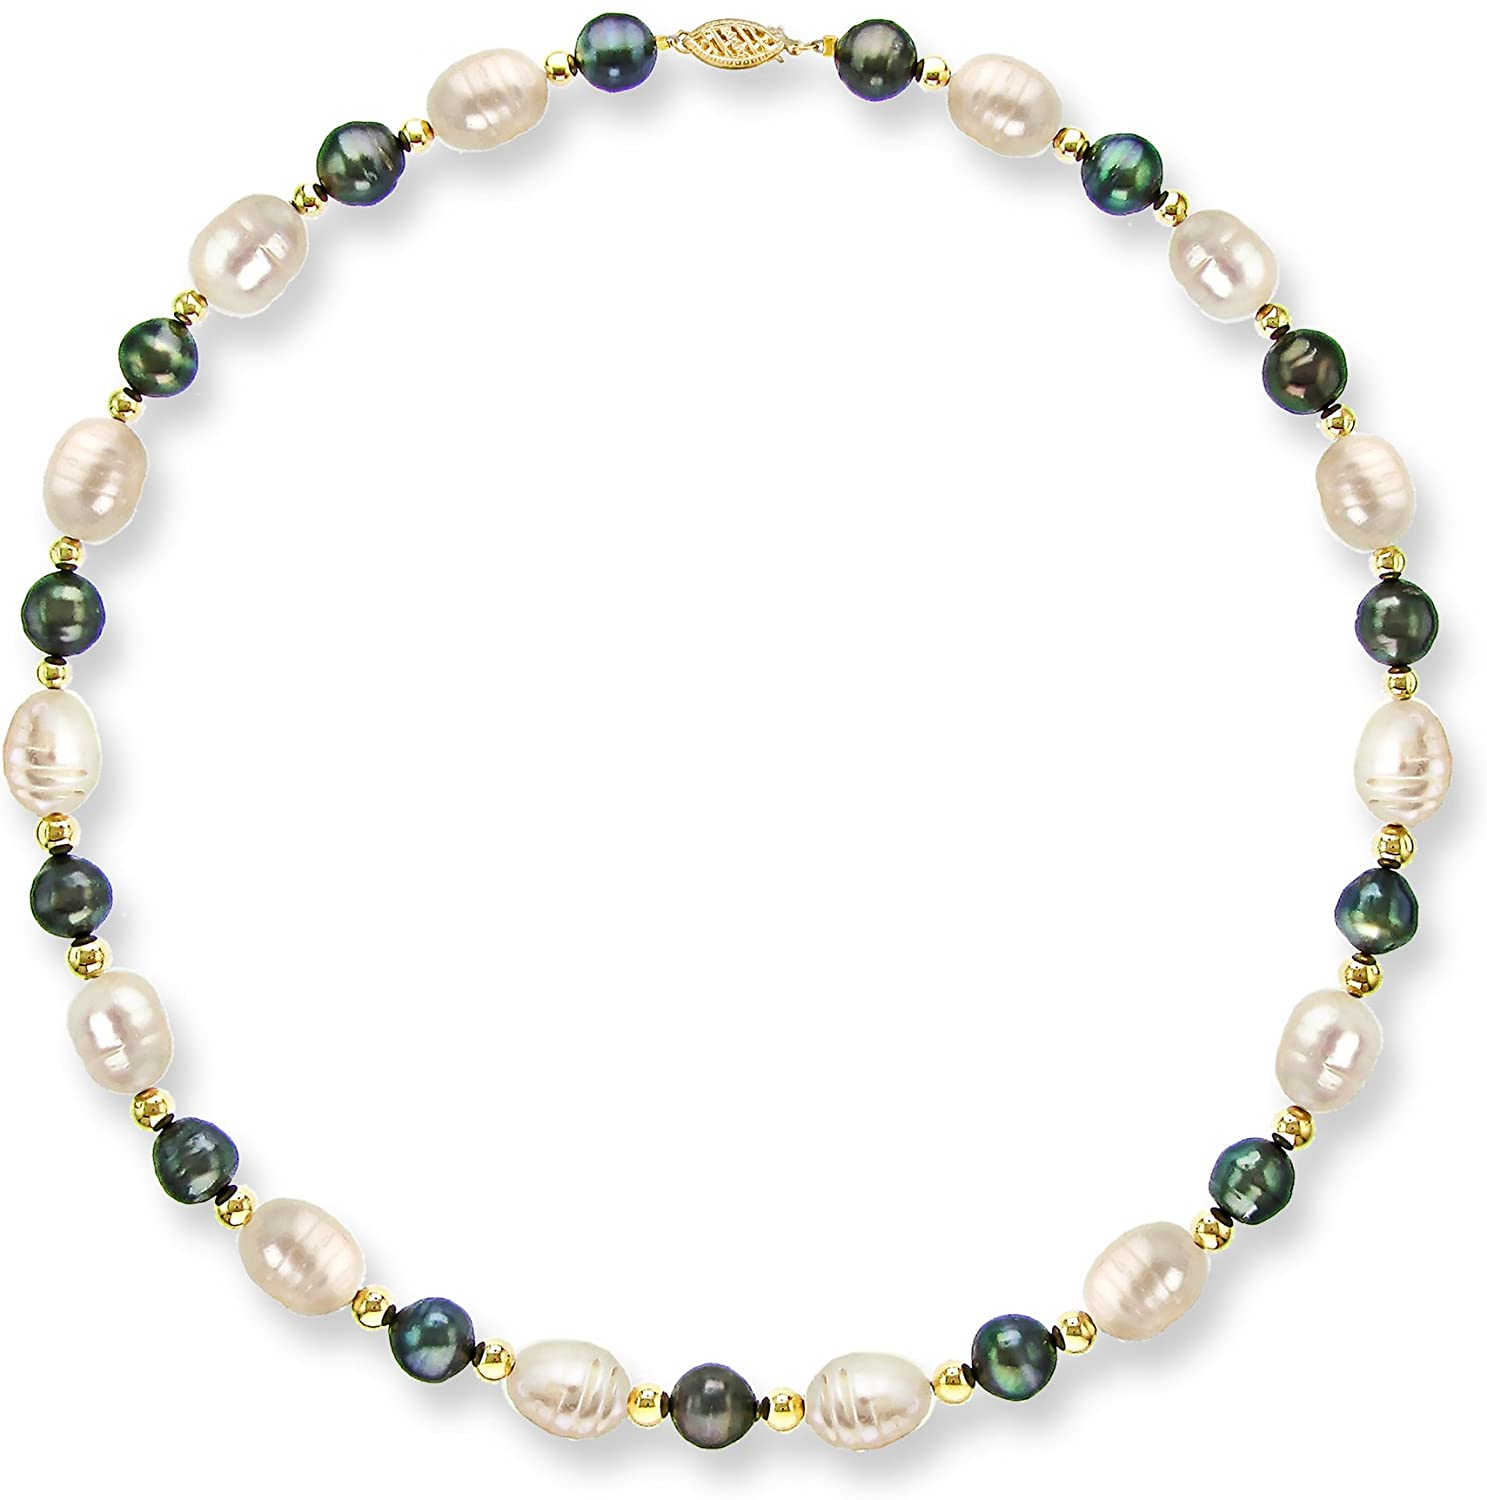 14k Yellow Gold 10-10.5mm White and 7-7.5mm Dyed-Blue Freshwater Cultured Pearl Necklace, 18